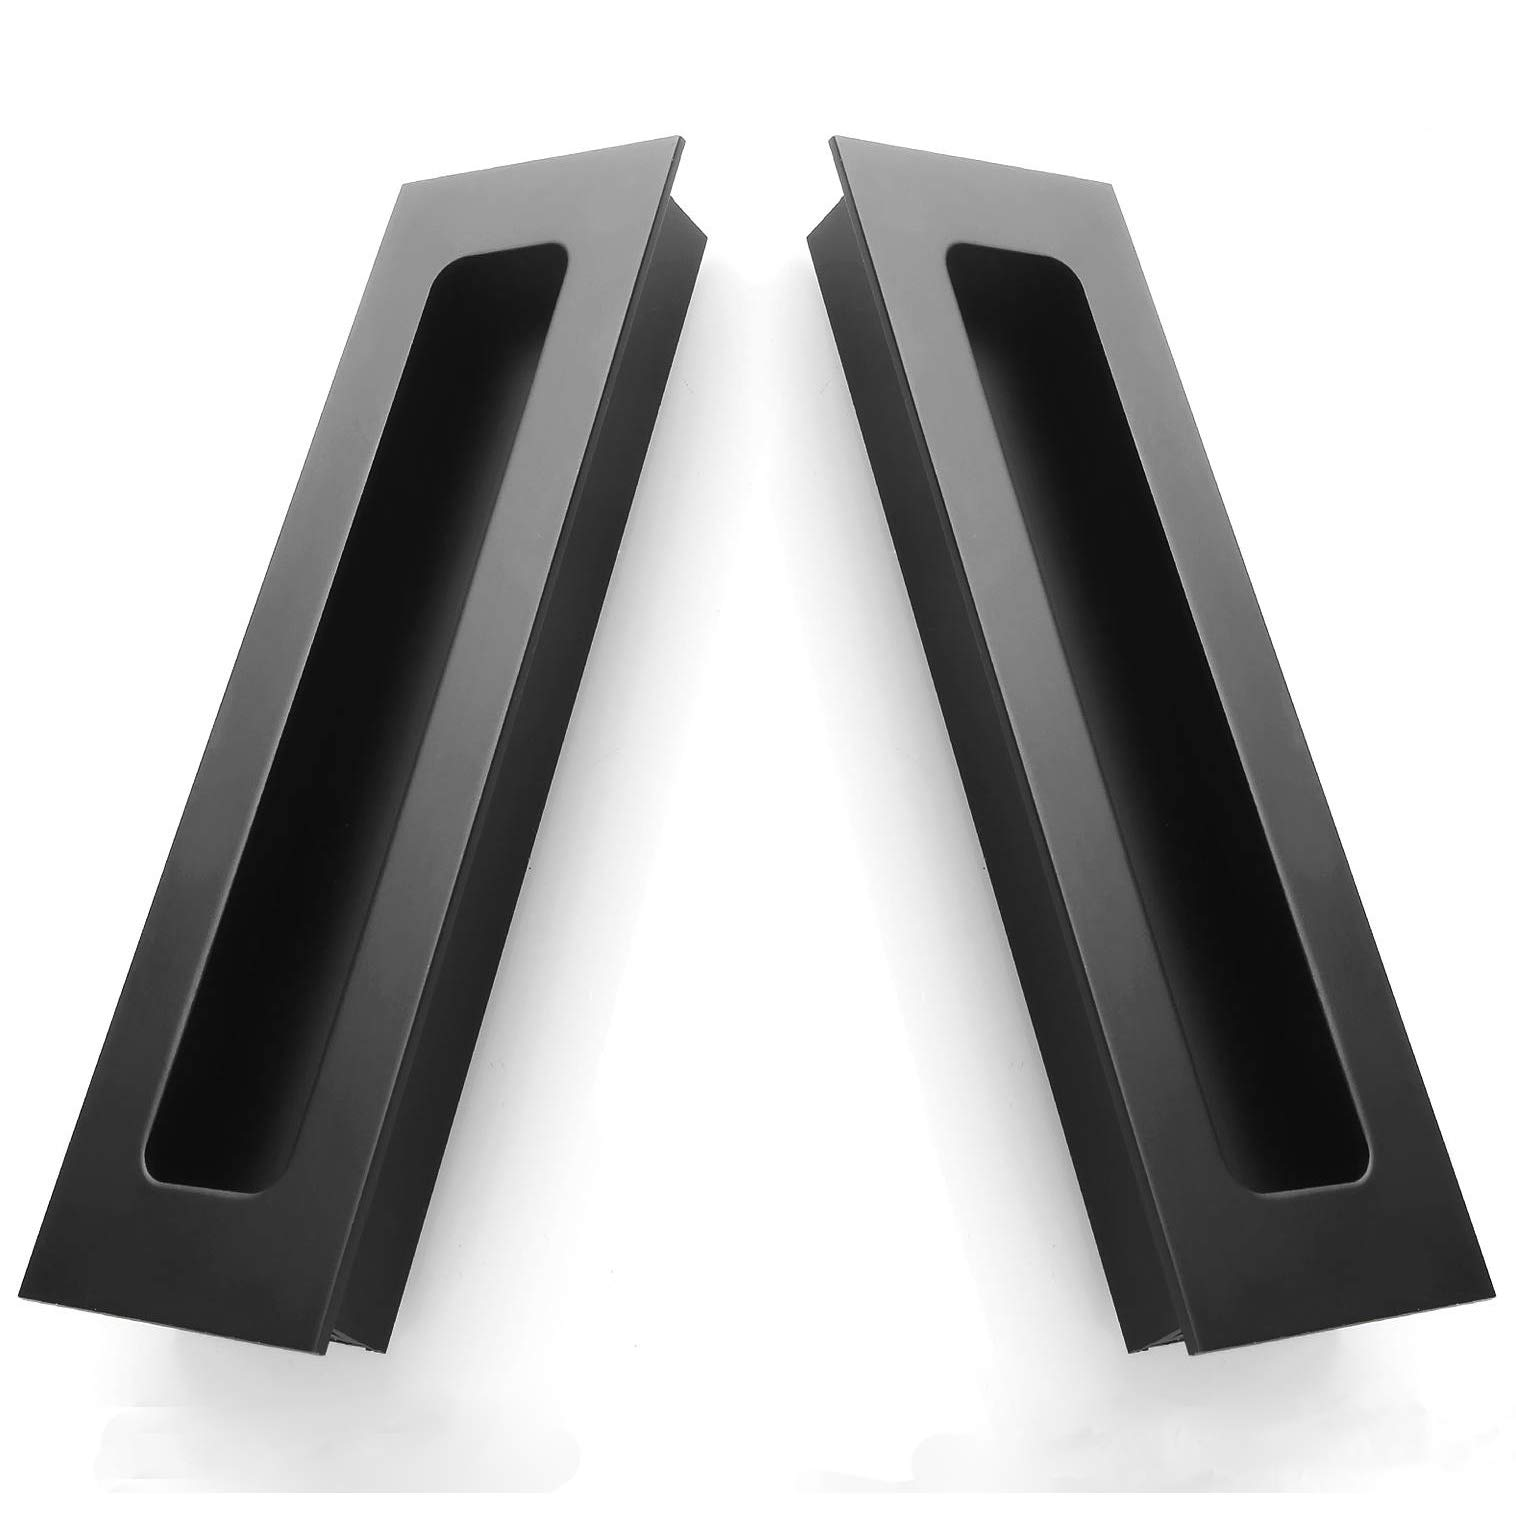 2 Packs Finger Pulls,Abuff Sliding Door Flush Pull Recessed Flush Handles with Hidden Concealed Screws for Cabinets, Closet, Drawers -  5.59''x1.69''x0.62''